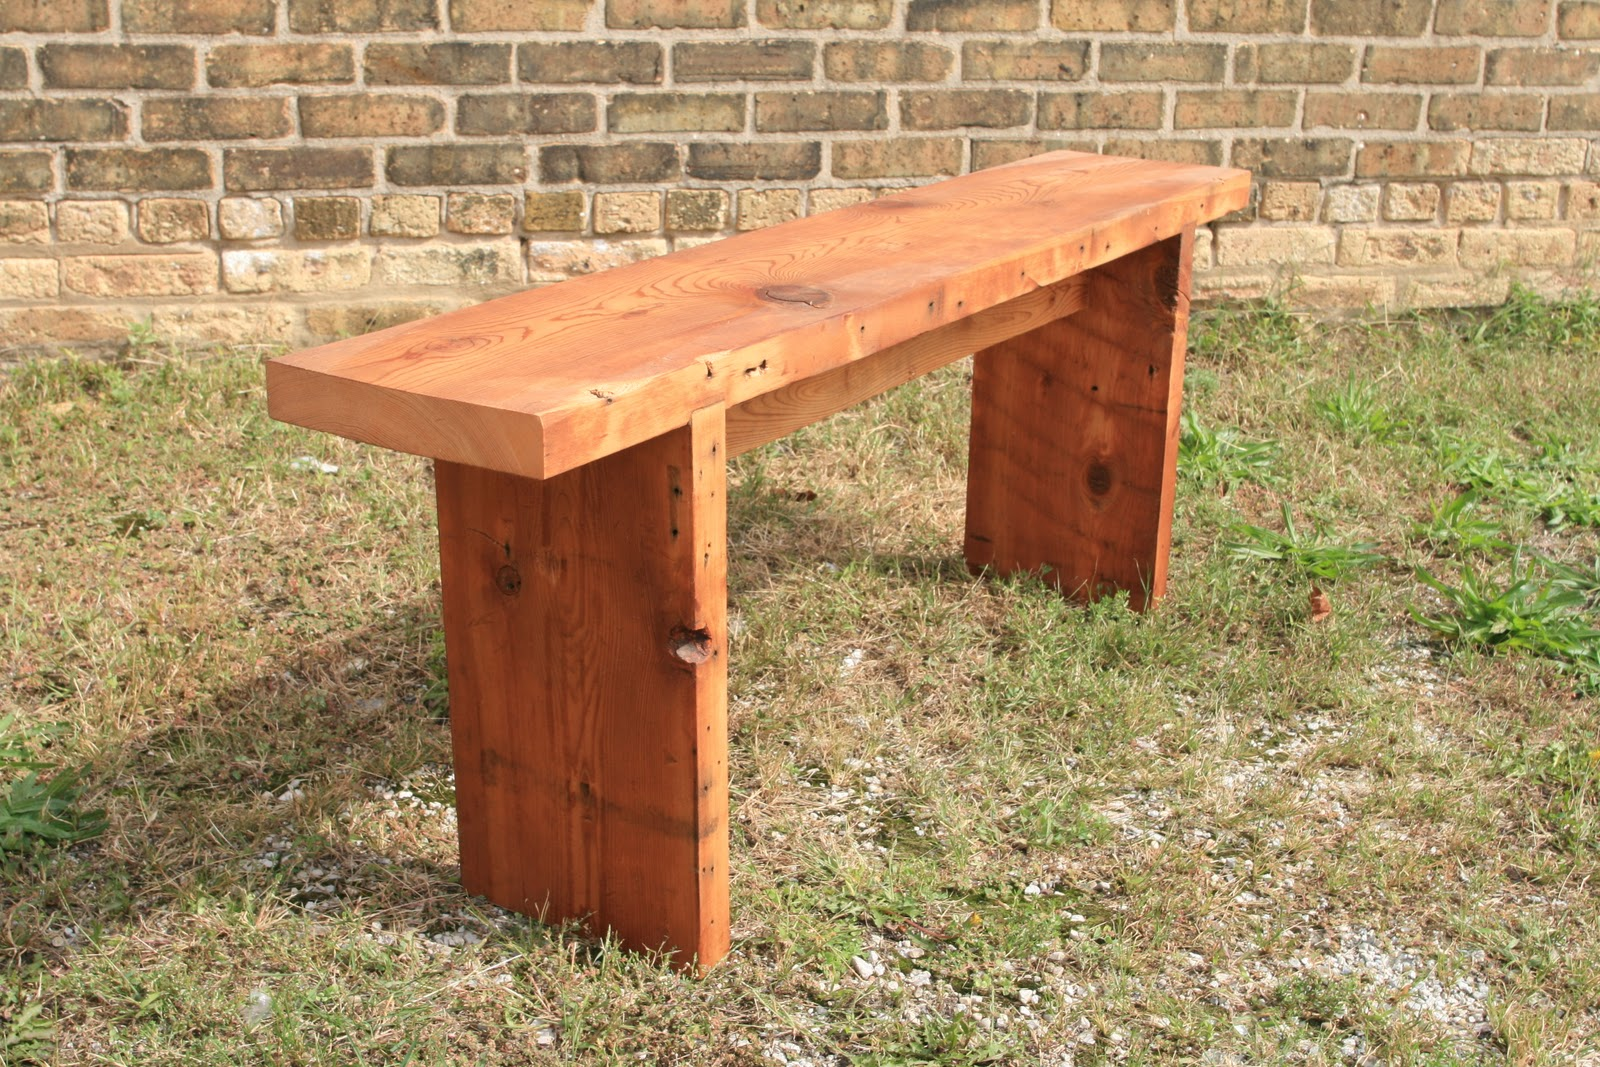 Simple Wooden Bench Designs ~ Woodwork how to build a simple wooden bench pdf plans